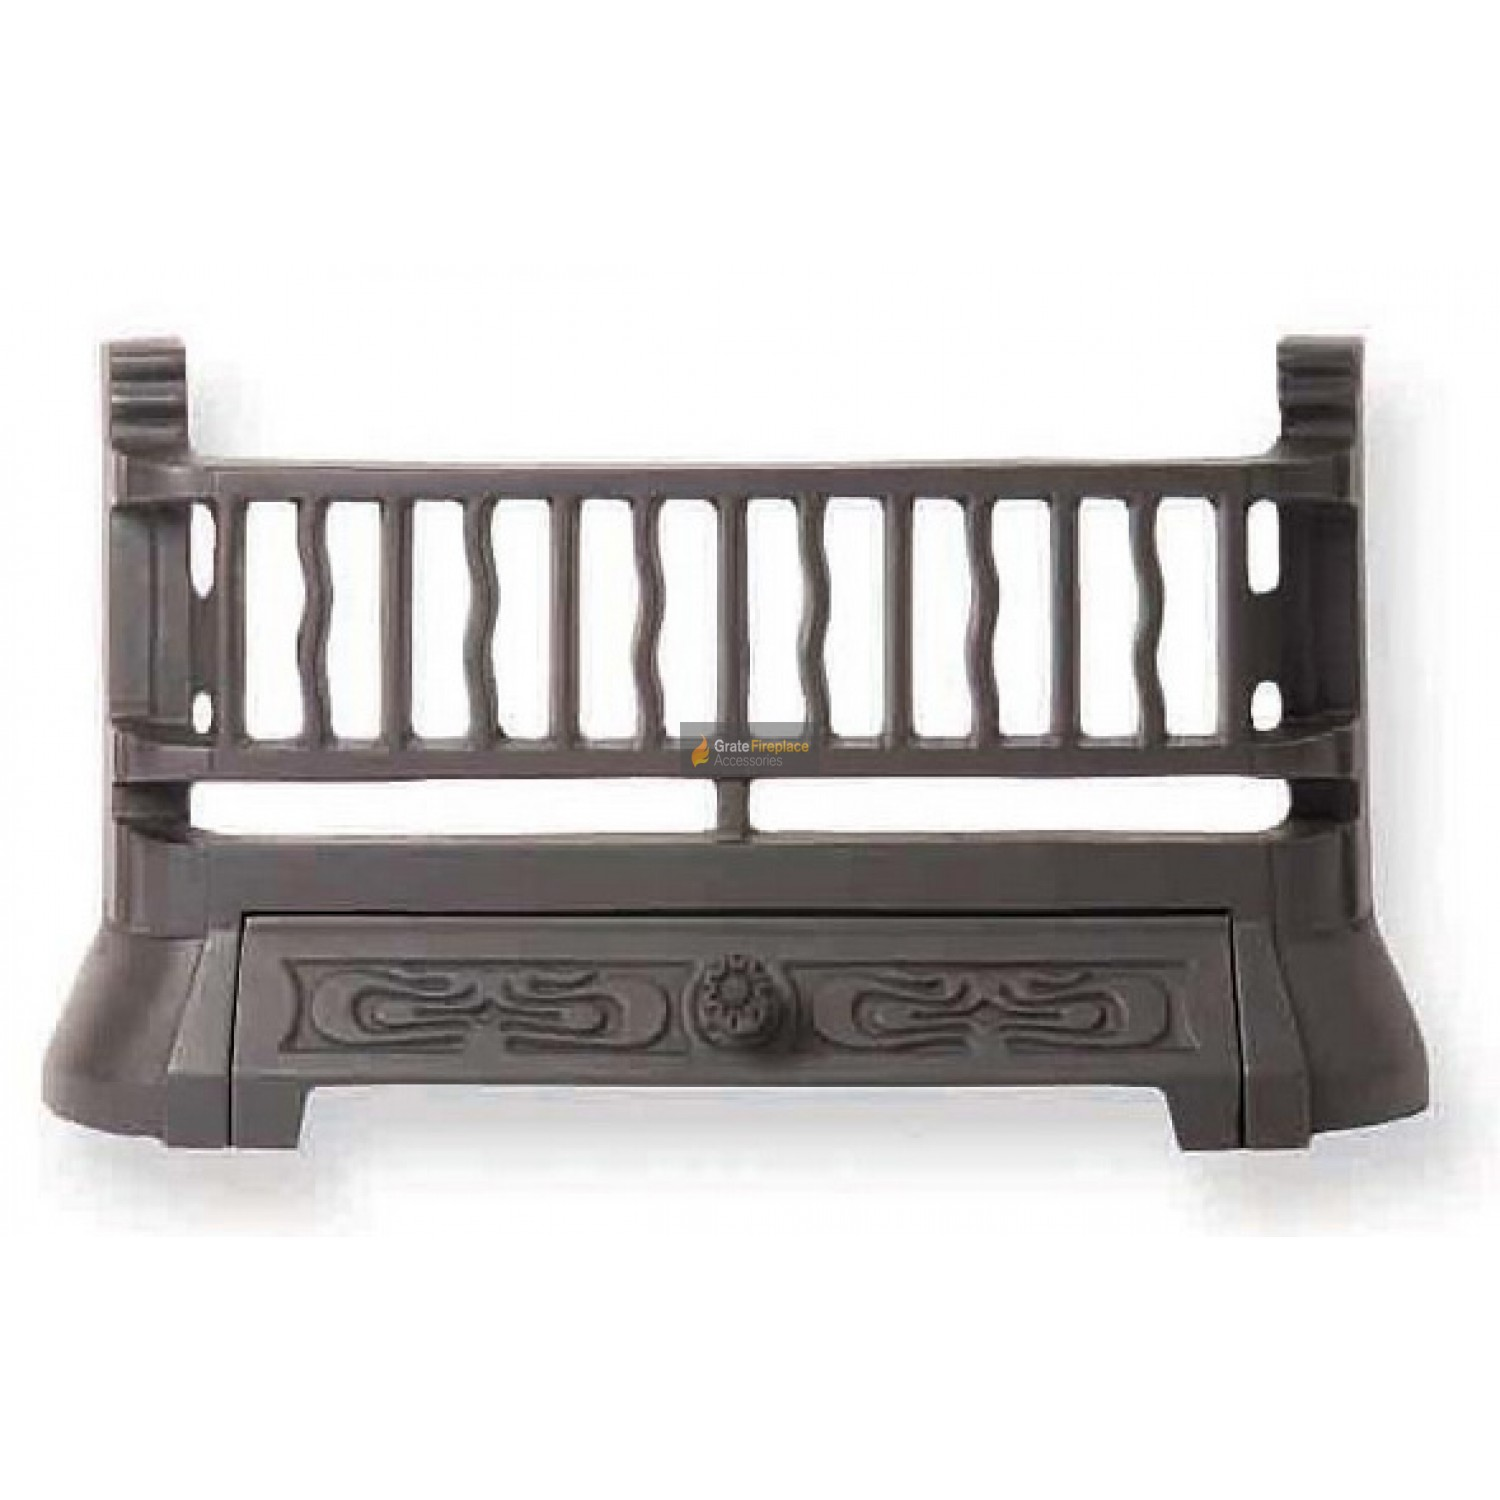 Cast Iron Fireplace tools Luxury Antique Fireplaces Mantels & Fireplace Accessories Cast